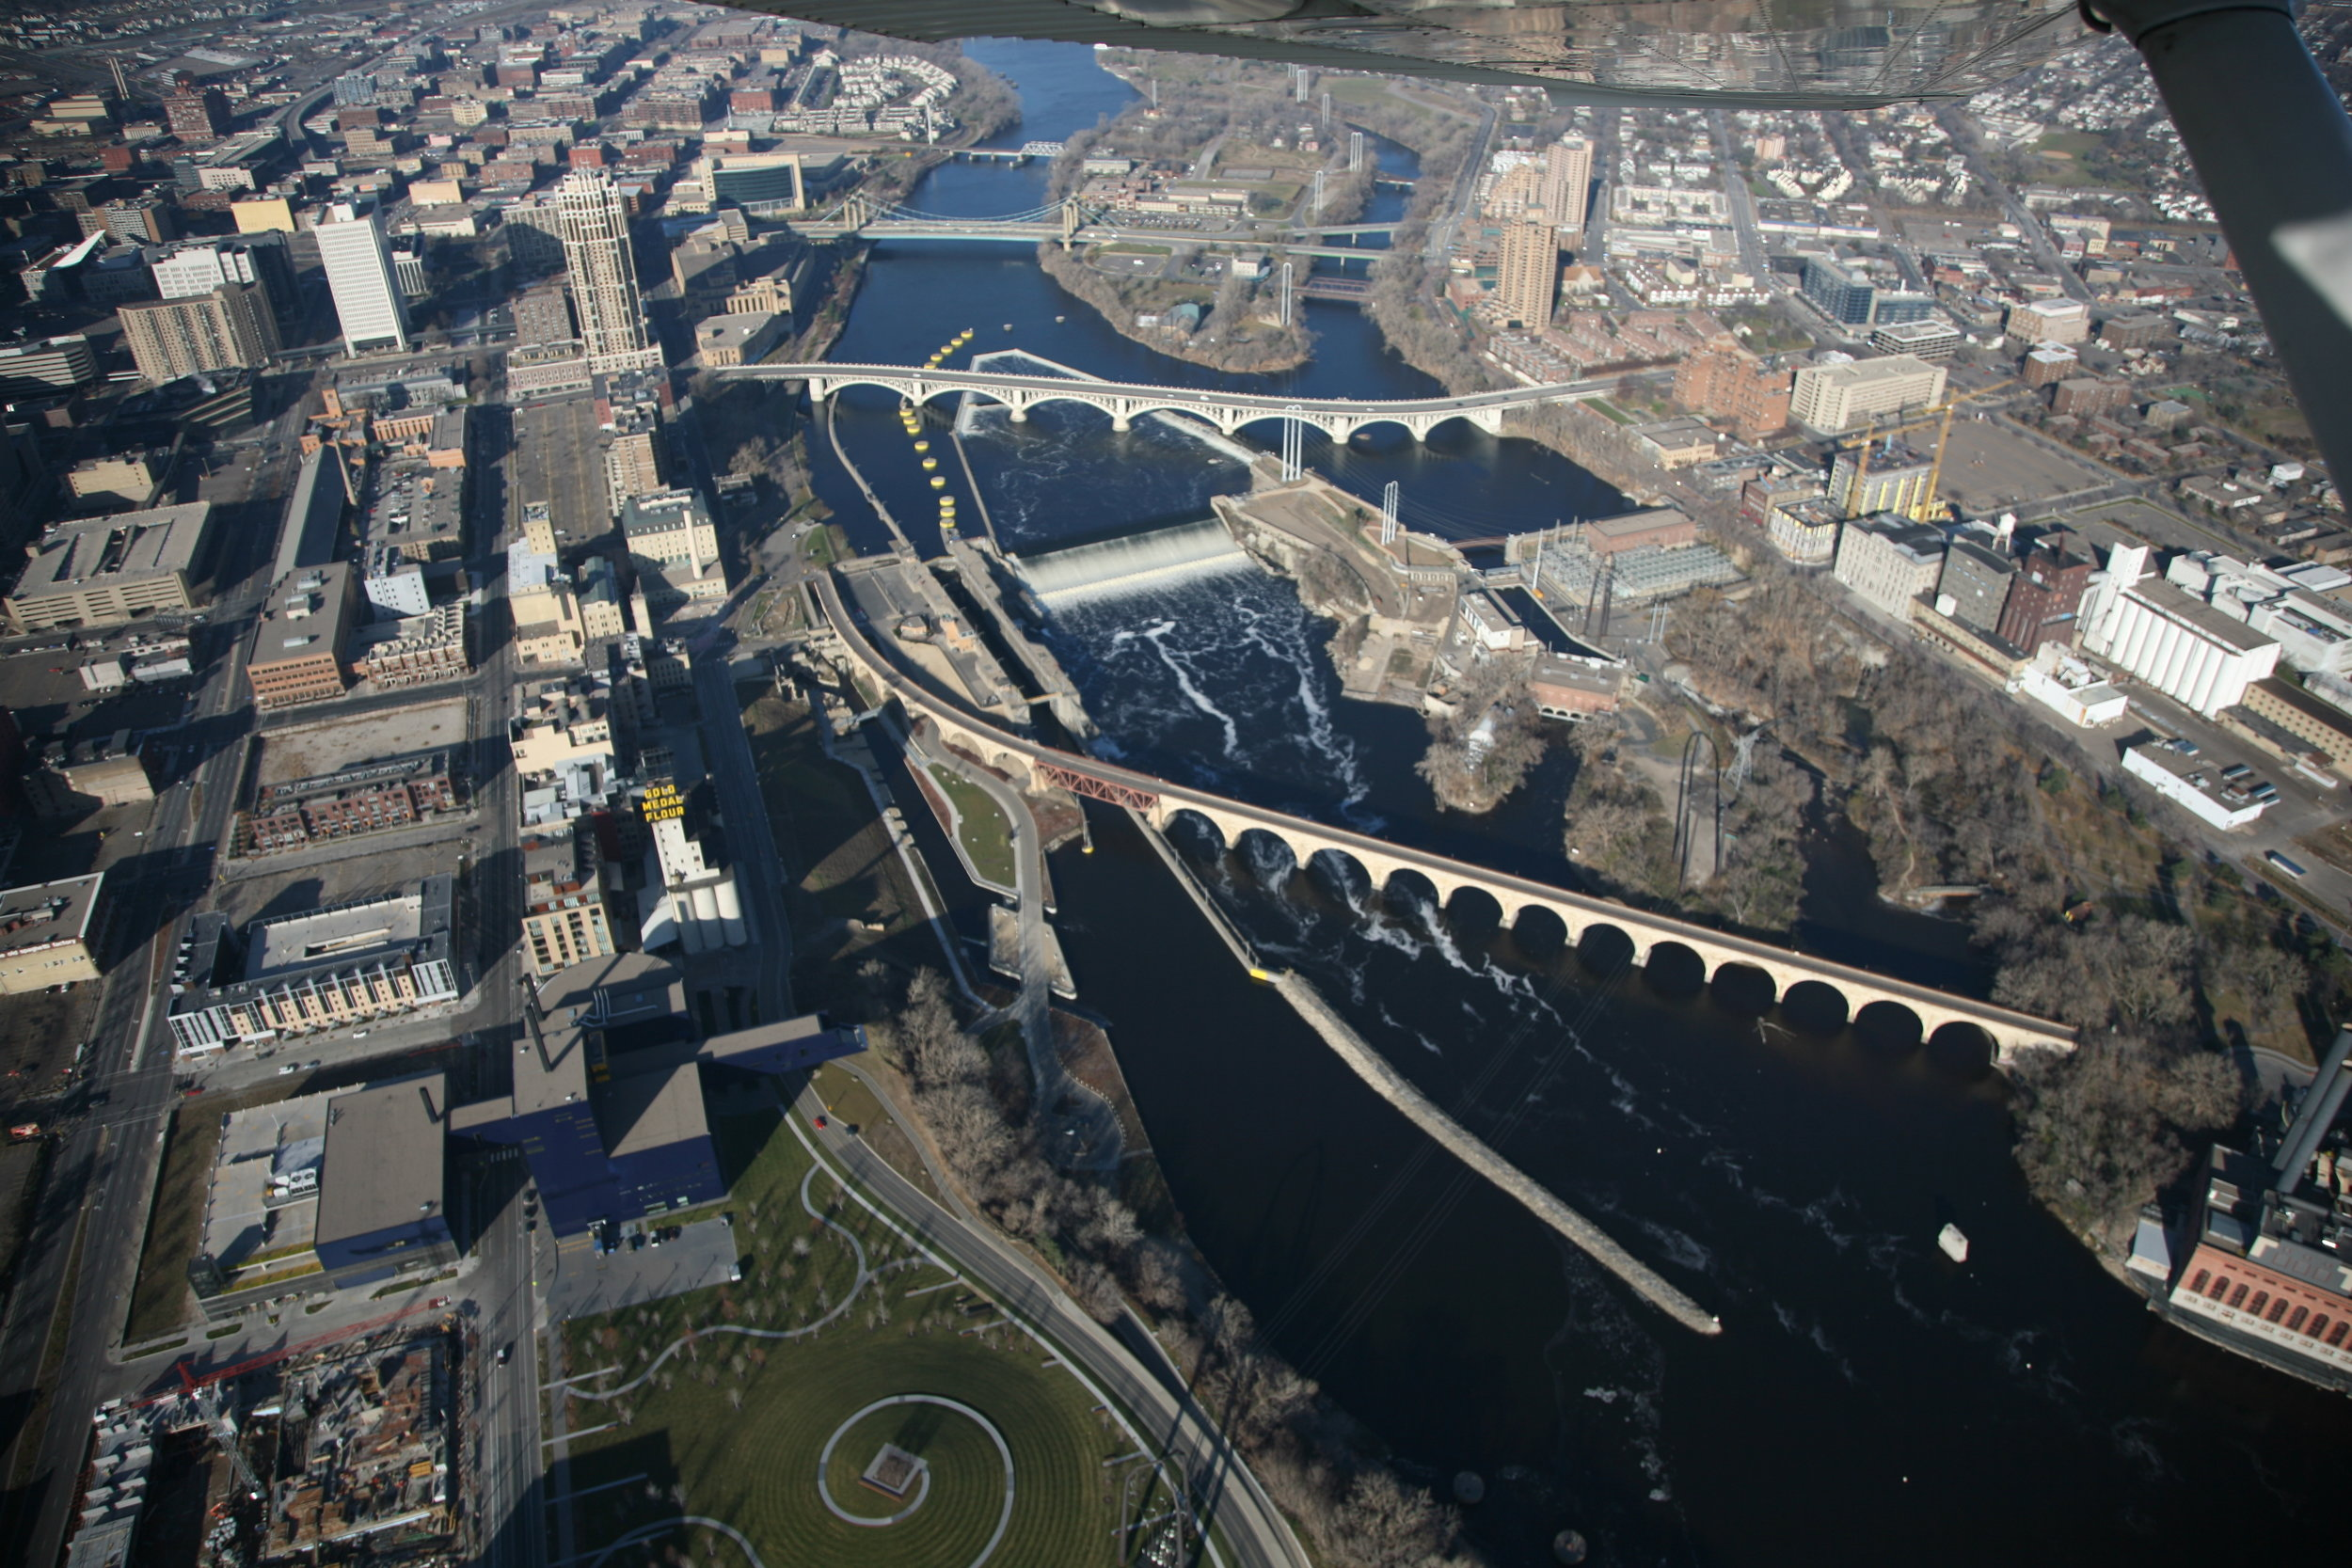 Upper St. Anthony Falls Lock & Dam - Explore this unique river navigation structure and get up close to St. Anthony Falls, including walking around the top of the highest lock on the Upper Mississippi River! Knowledgeable park rangers will be onsite to answer questions and guide tours. The lock wall is outside, so dress appropriately for the weather.